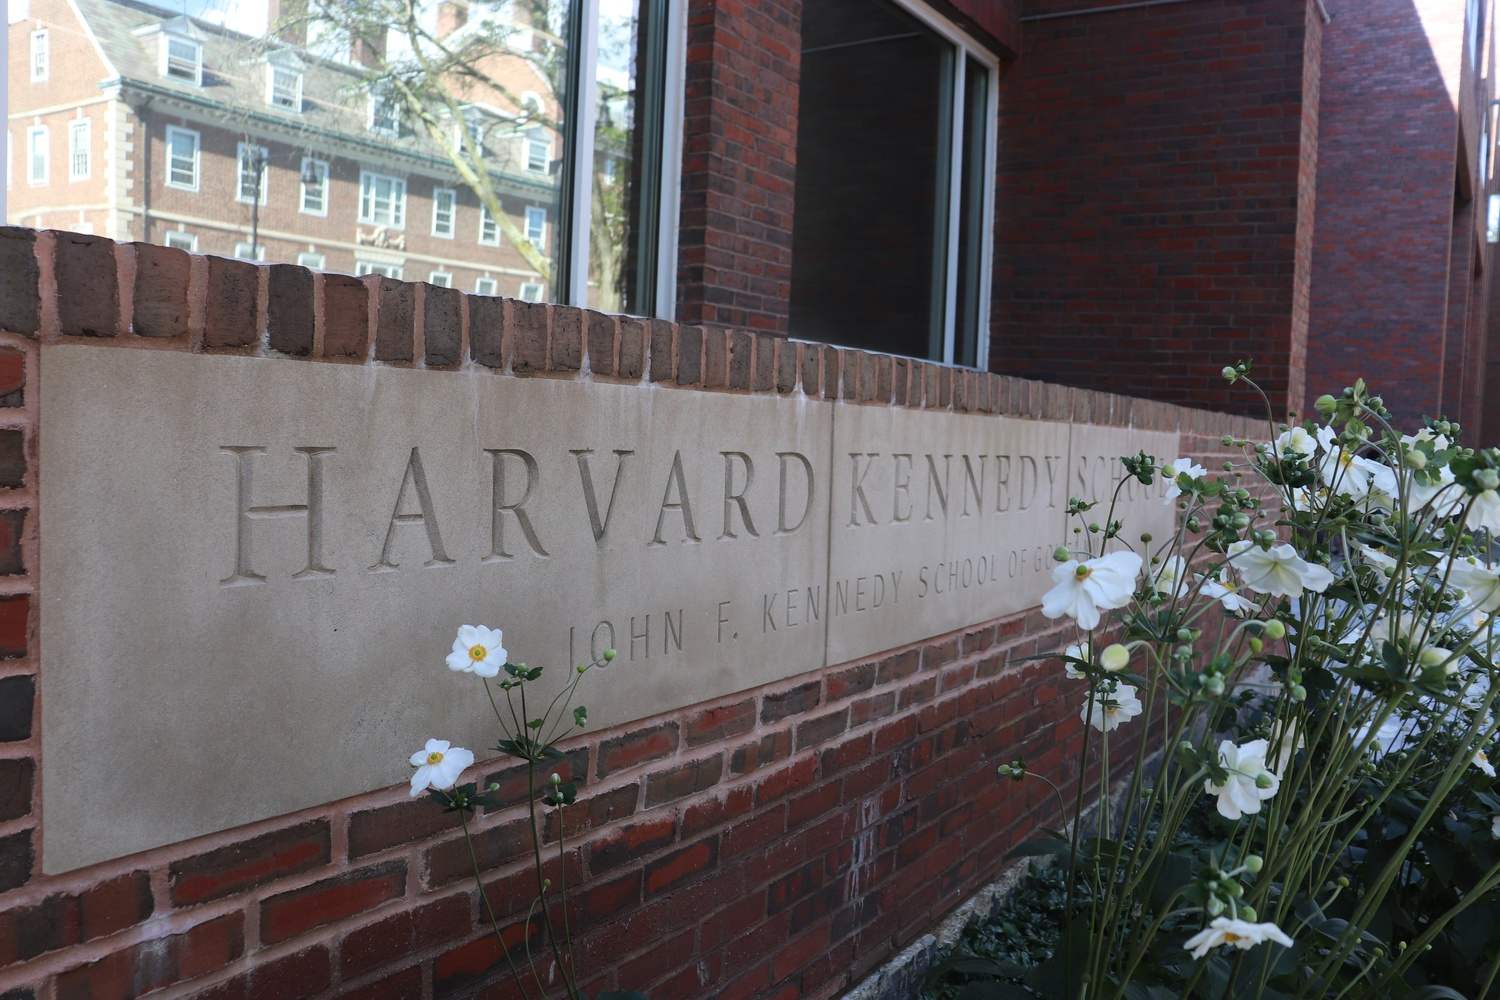 Beginning this semester, the length of Harvard Kennedy School's mandatory race and public policy course has been extended from two weeks to a full semester.